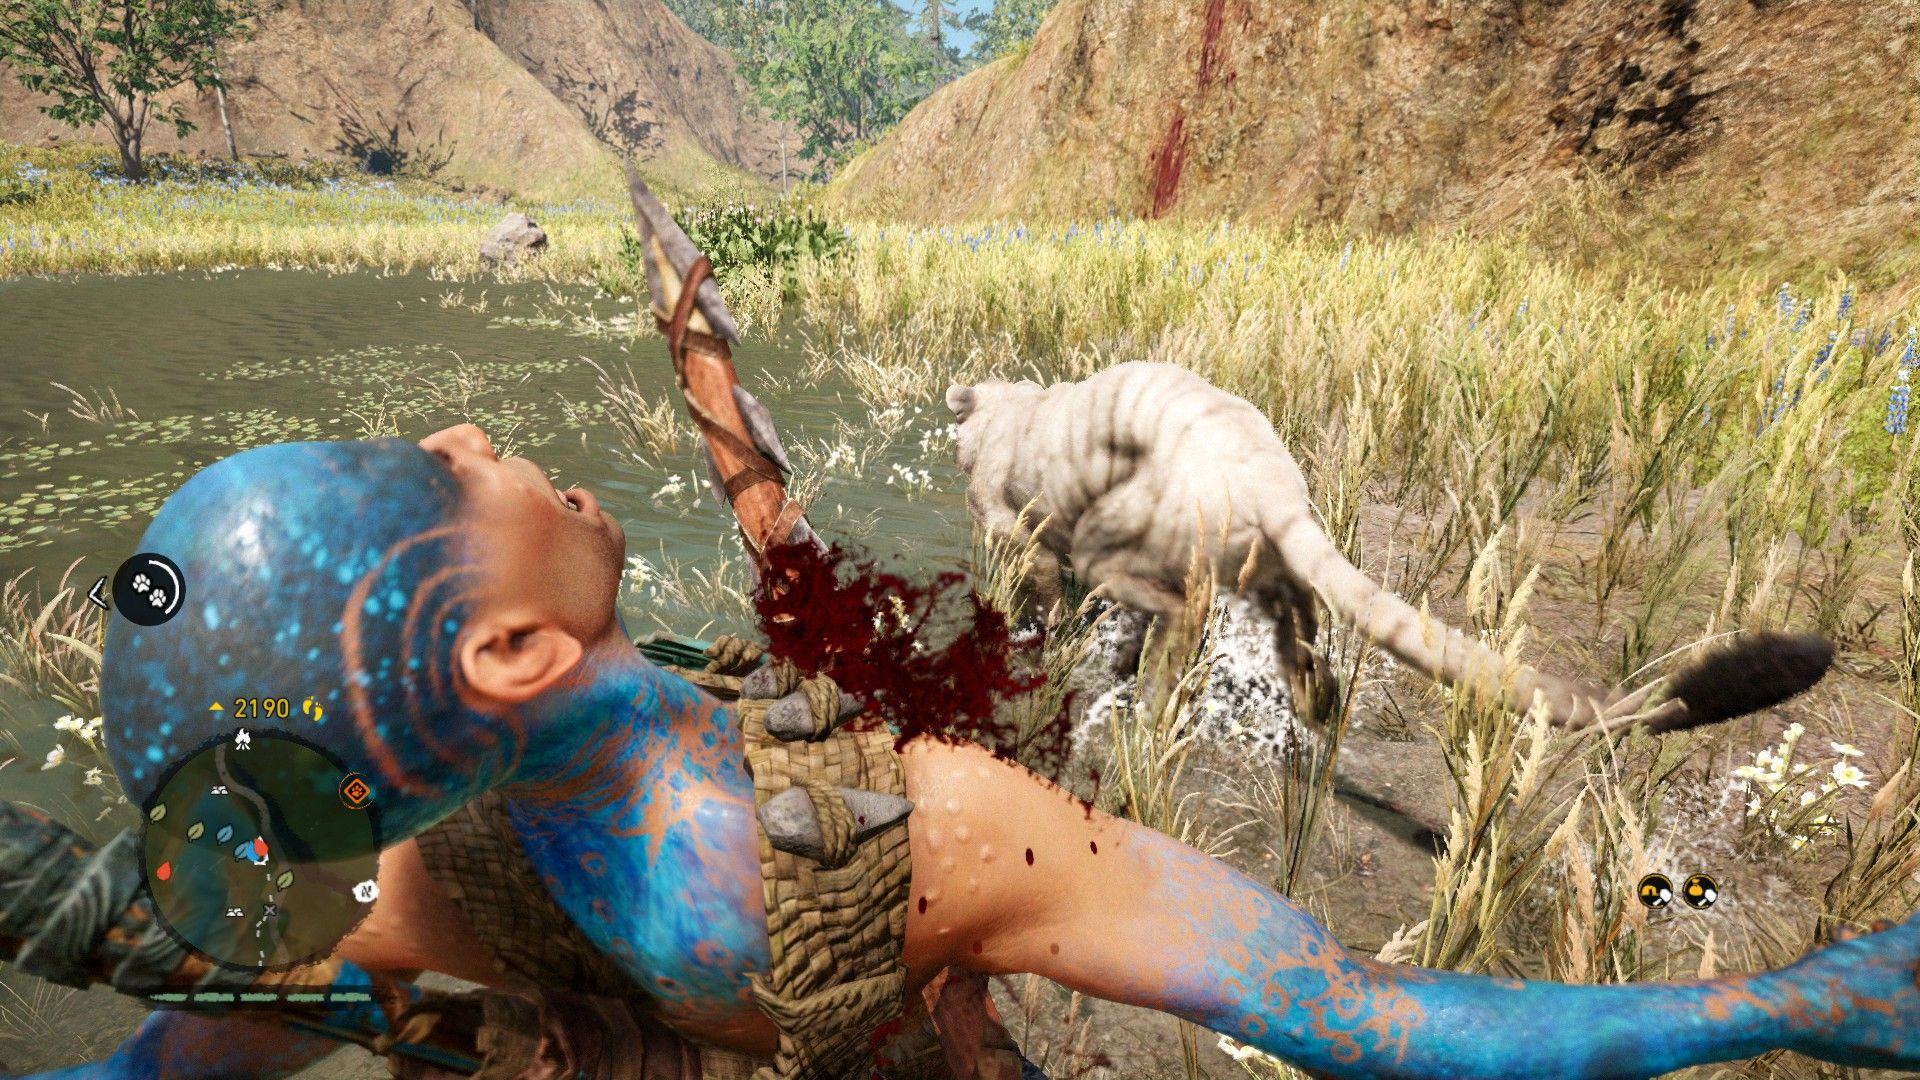 Far Cry Primal Screenshots Image 18438 New Game Network